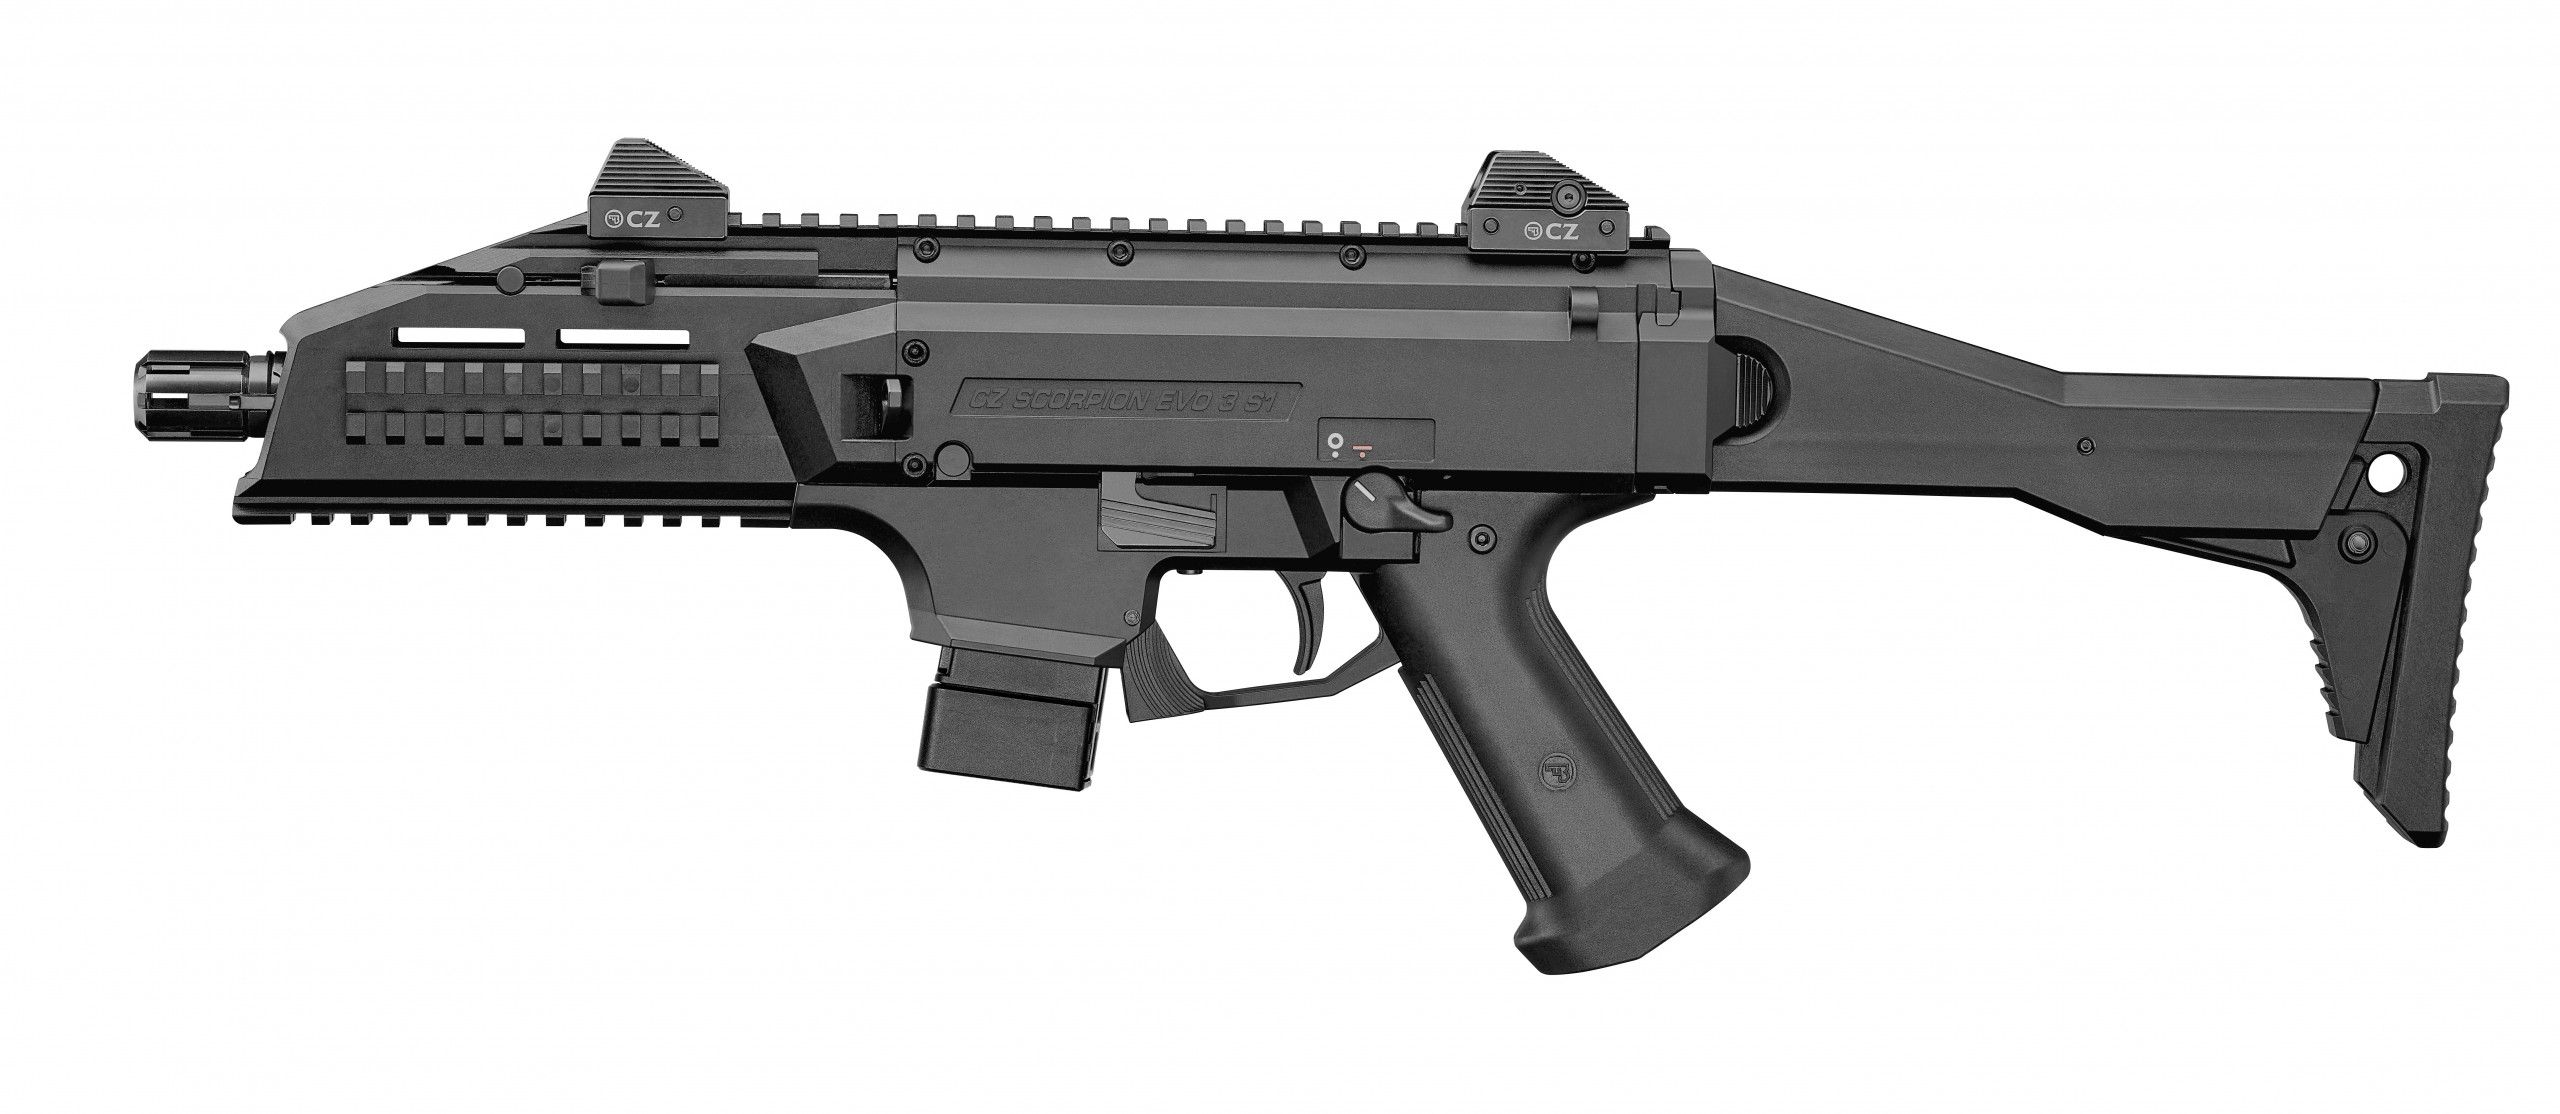 Get the CZ Scorpion EVO3 S1 F from P.B.Dionisio & Co.